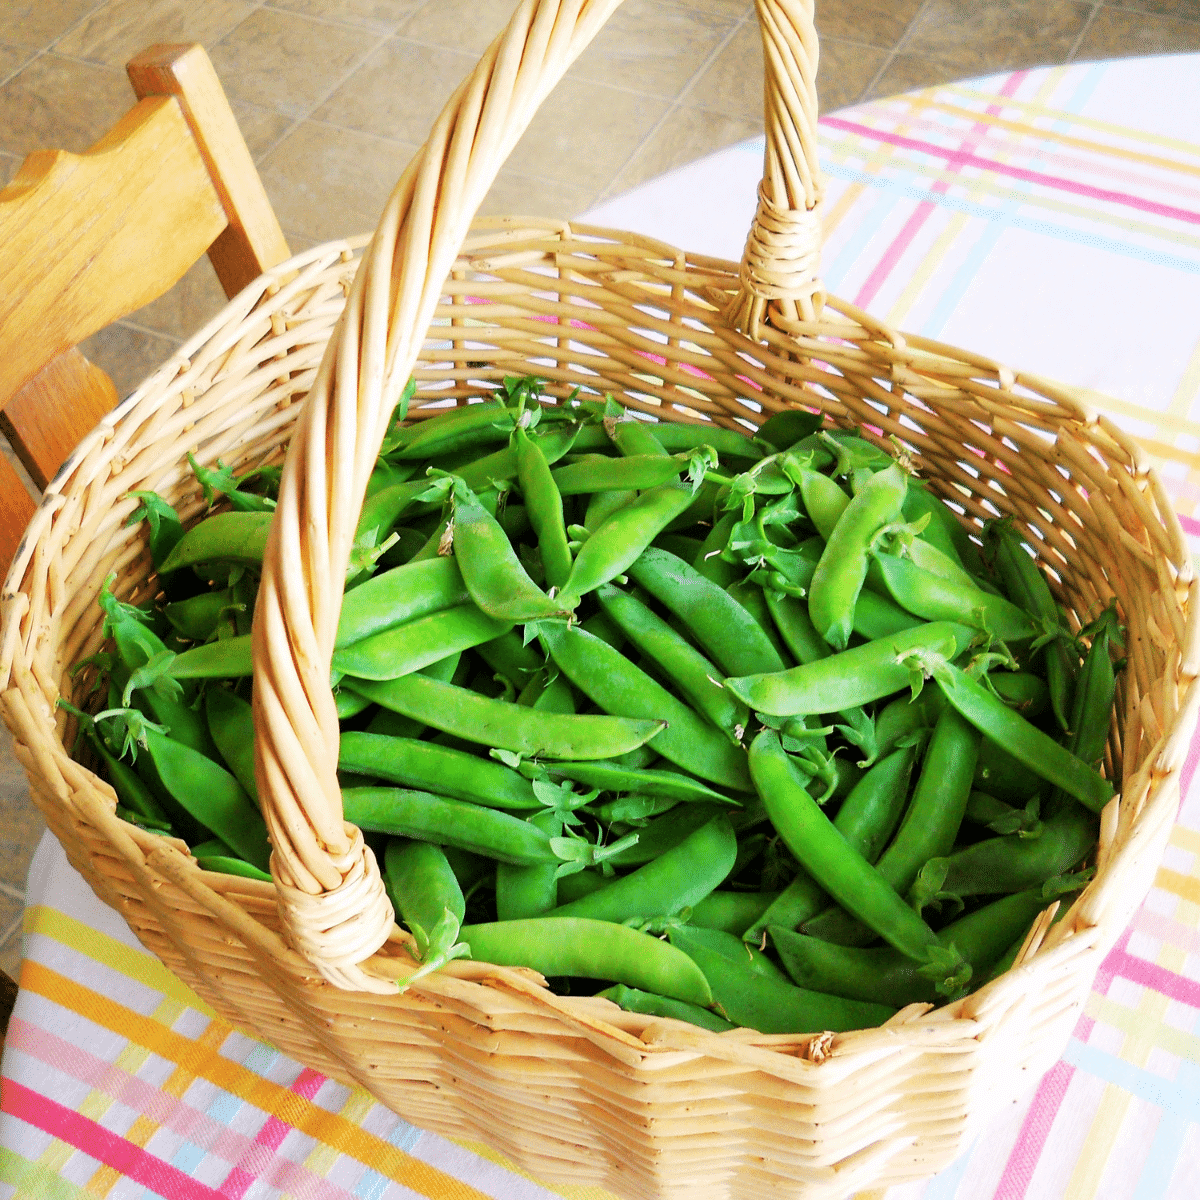 Freshly picked garden peas in a large wicker basket, placed on the kitchen table on a tablecloth